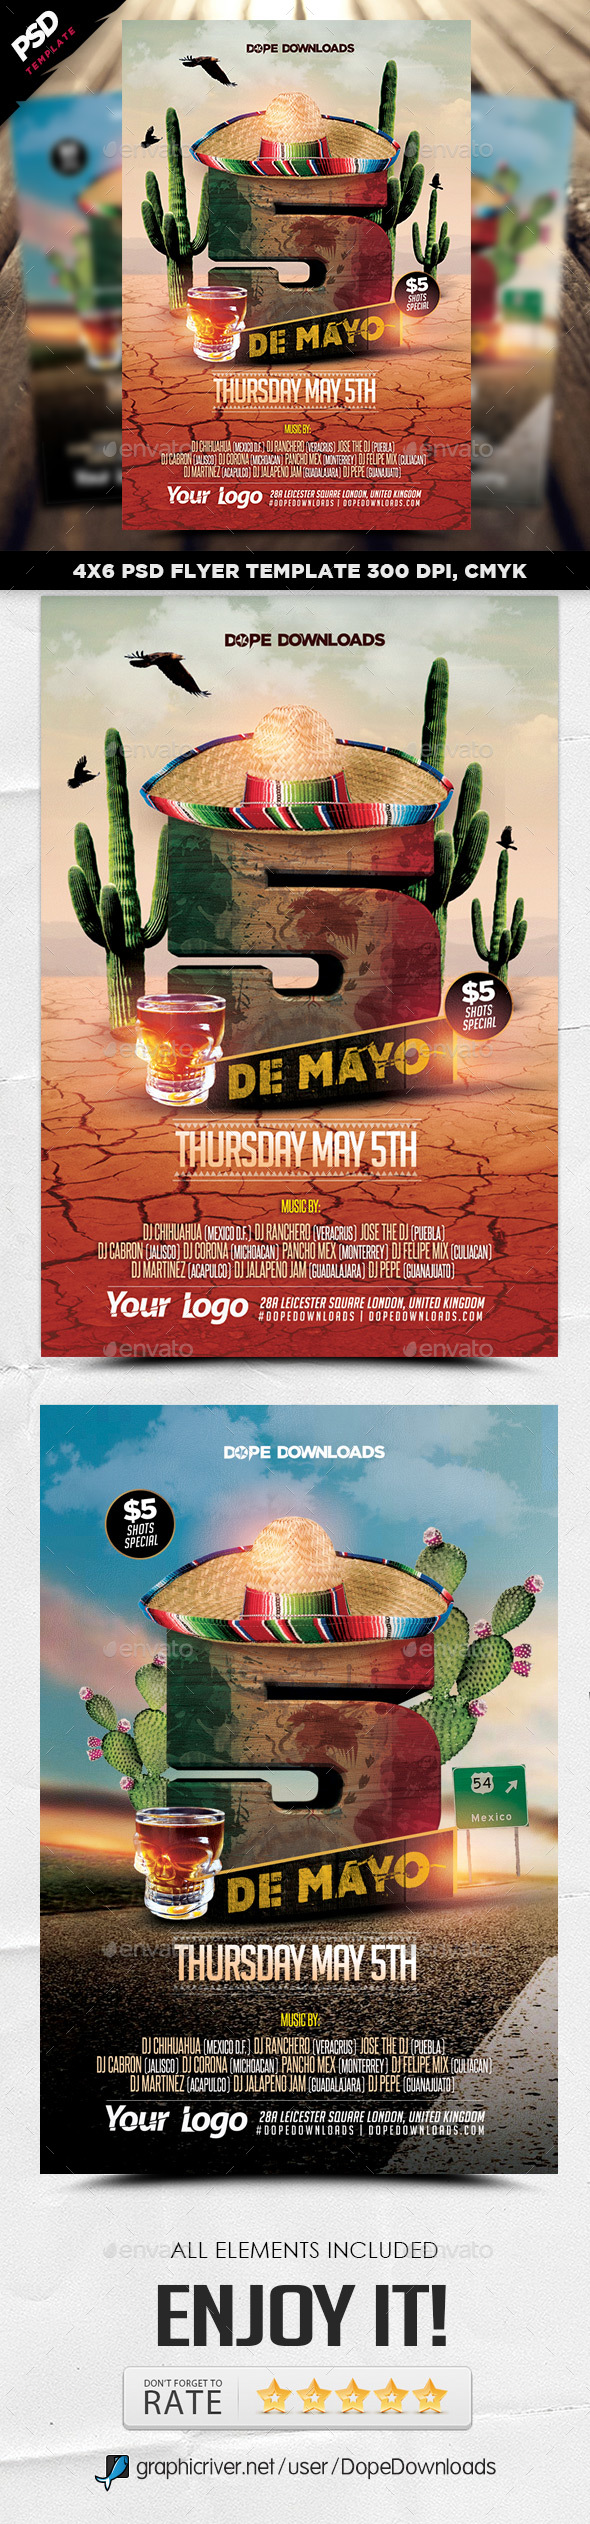 5 De Mayo 2016 Party Template - Events Flyers